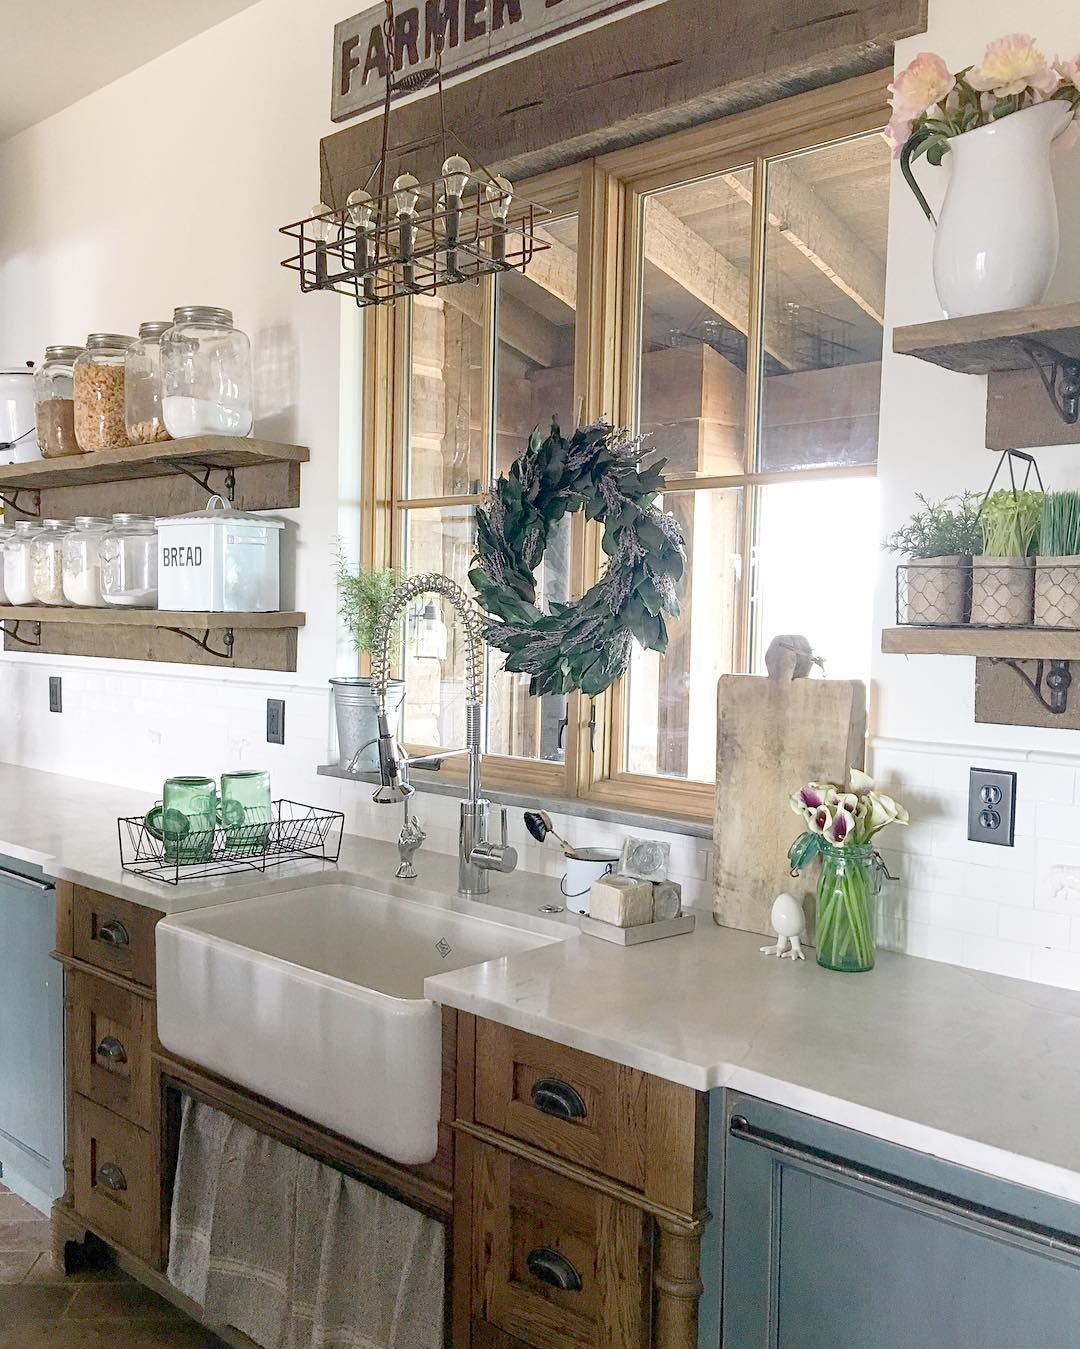 farmhouse apron sink with oak and mismatched